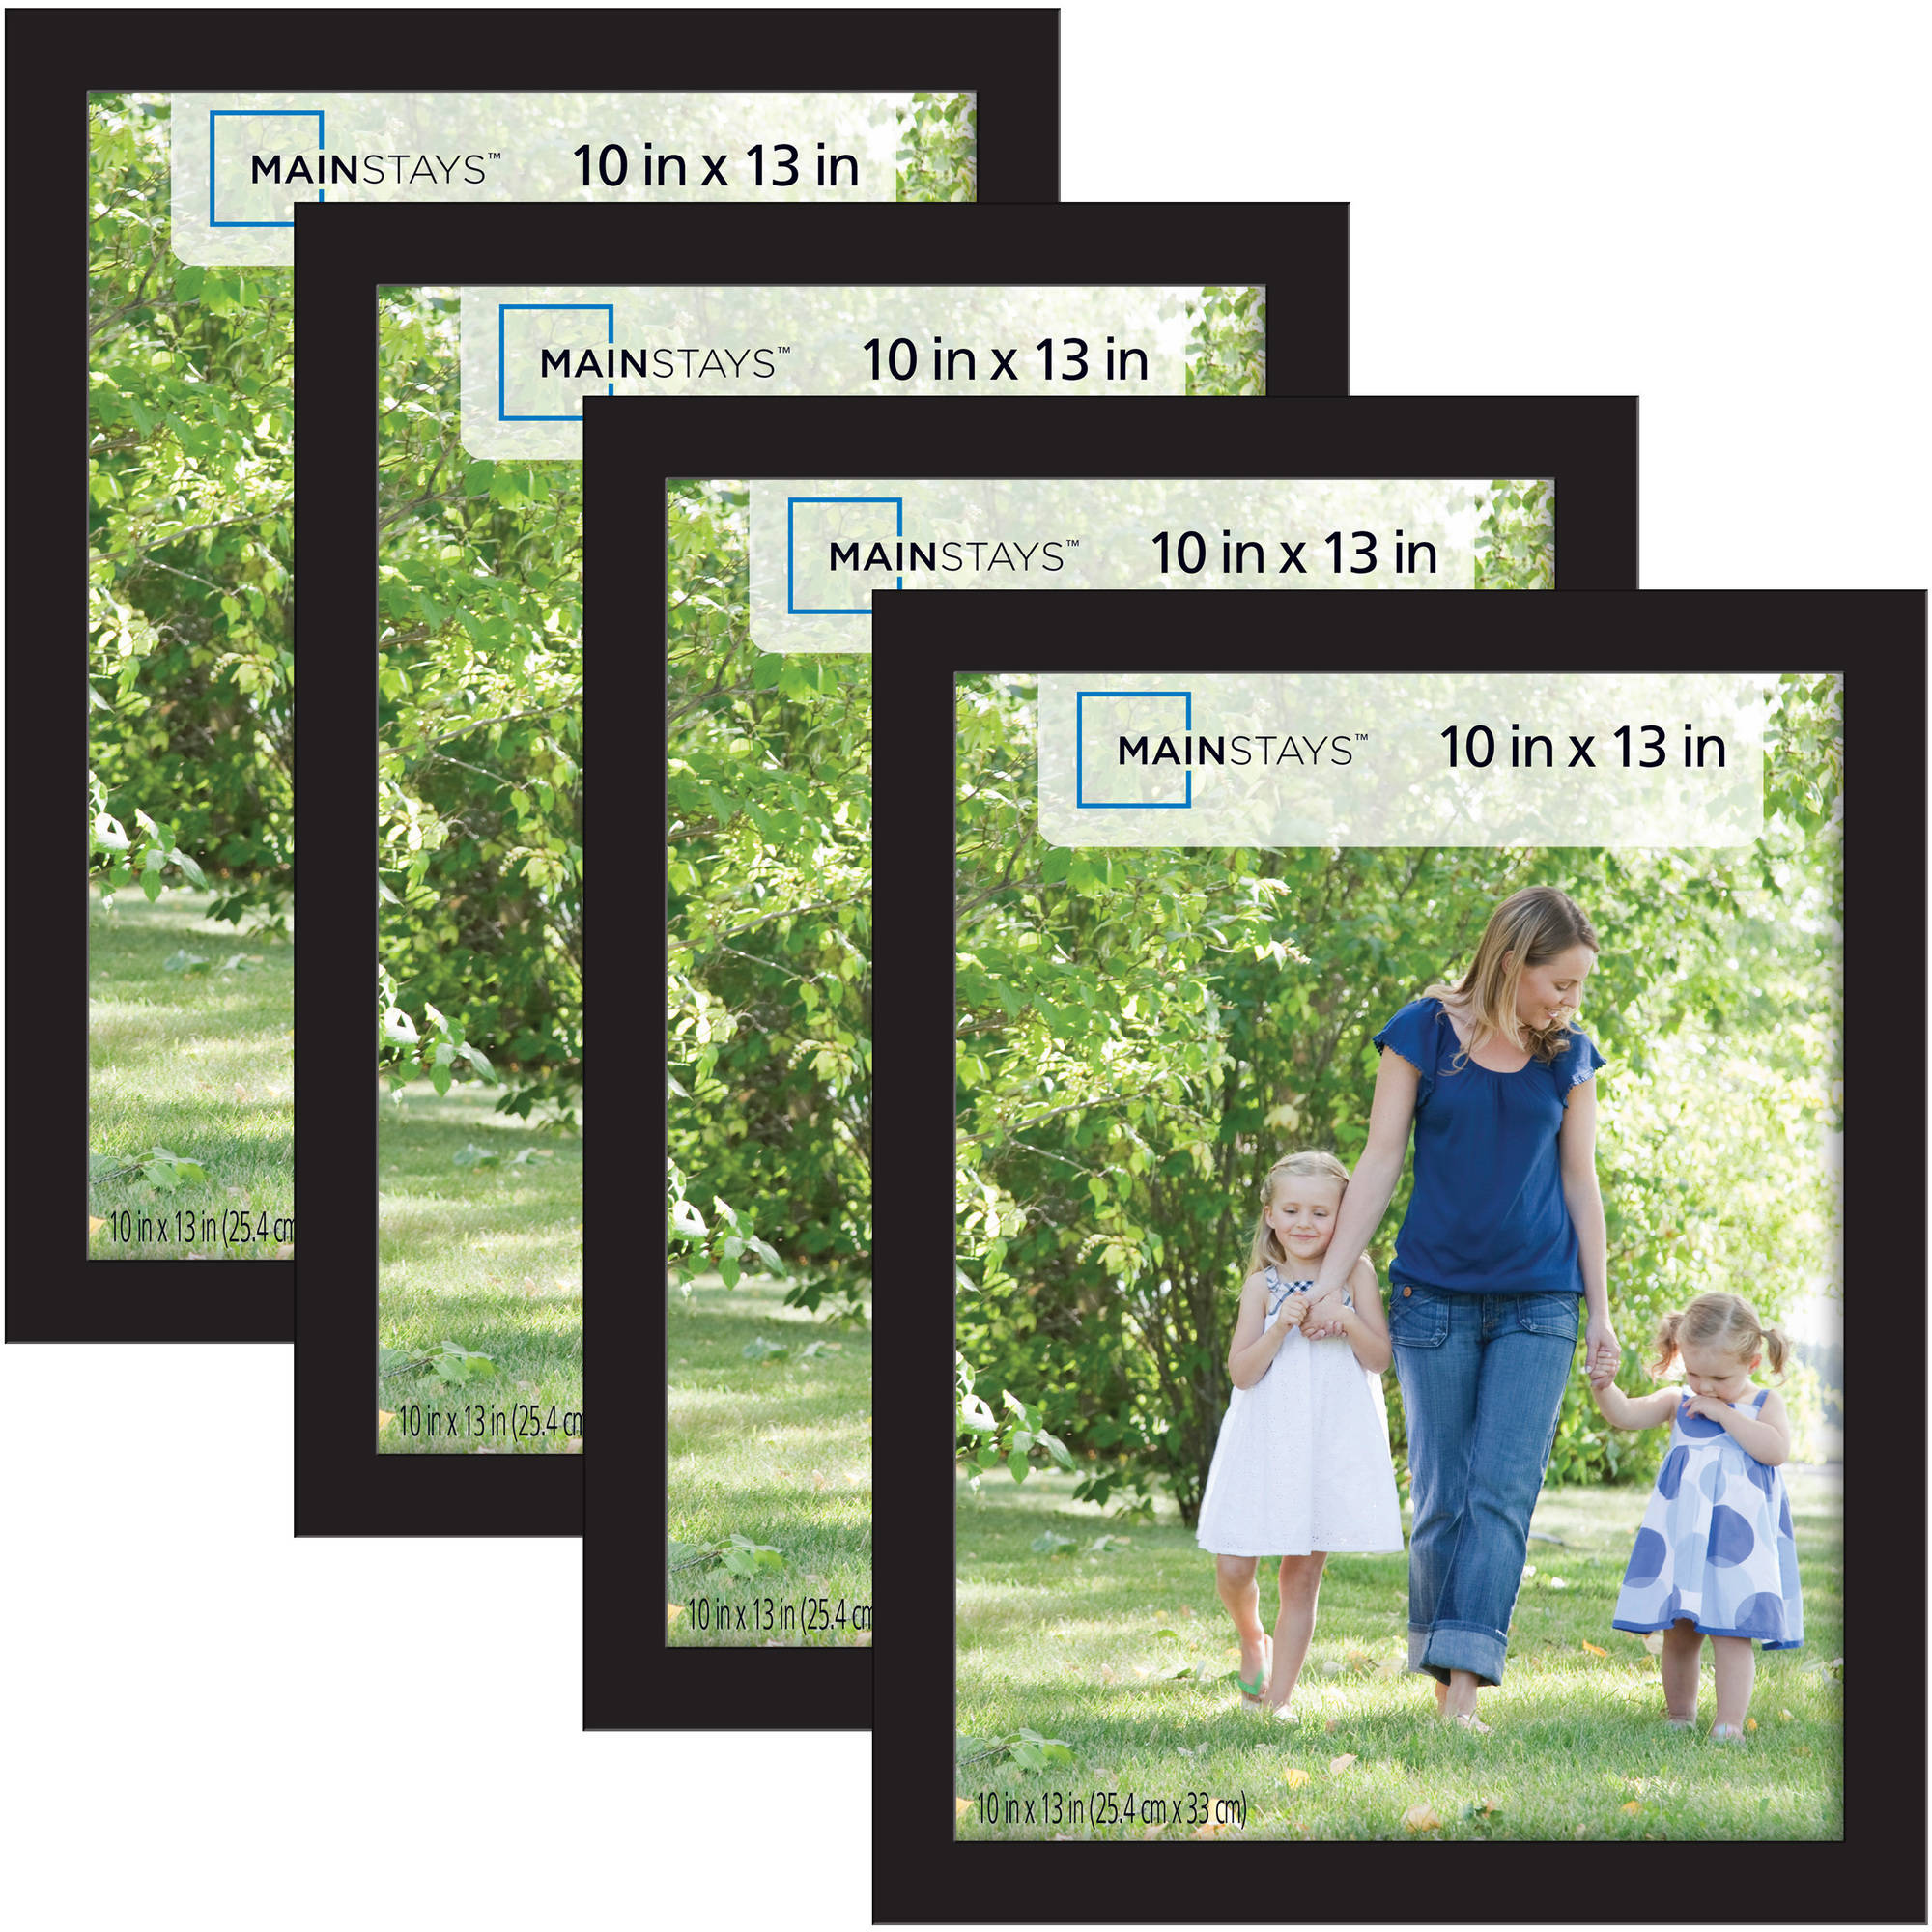 Mainstays 10x13 Picture Frames Black 4Pack  Walmartcom